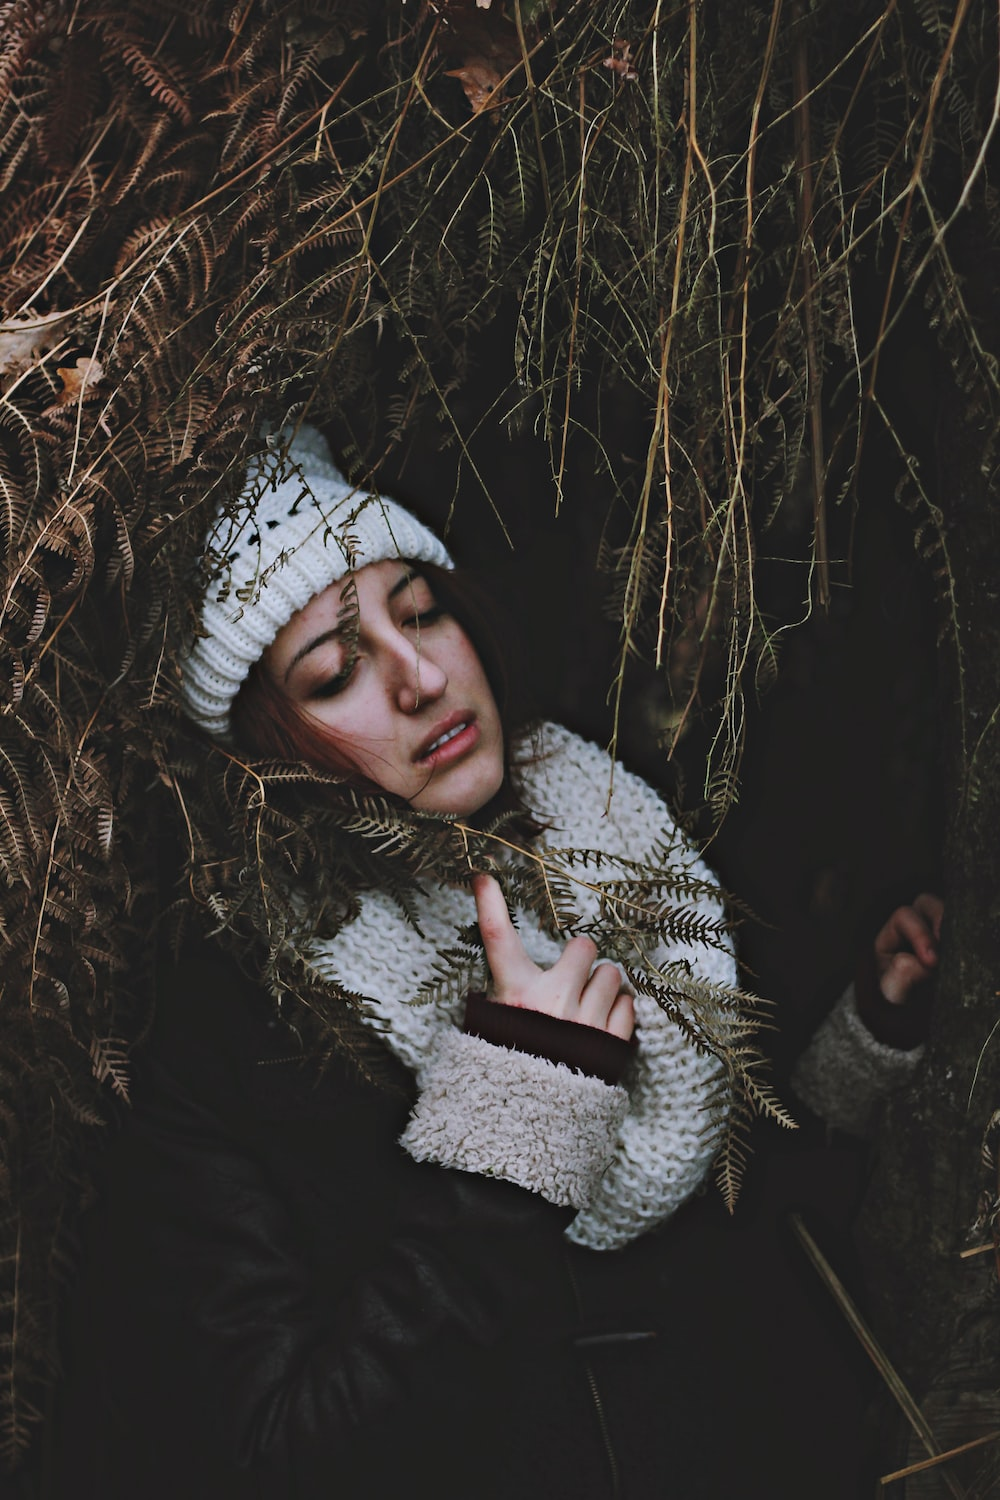 woman under arc of dried leaves holding scarf